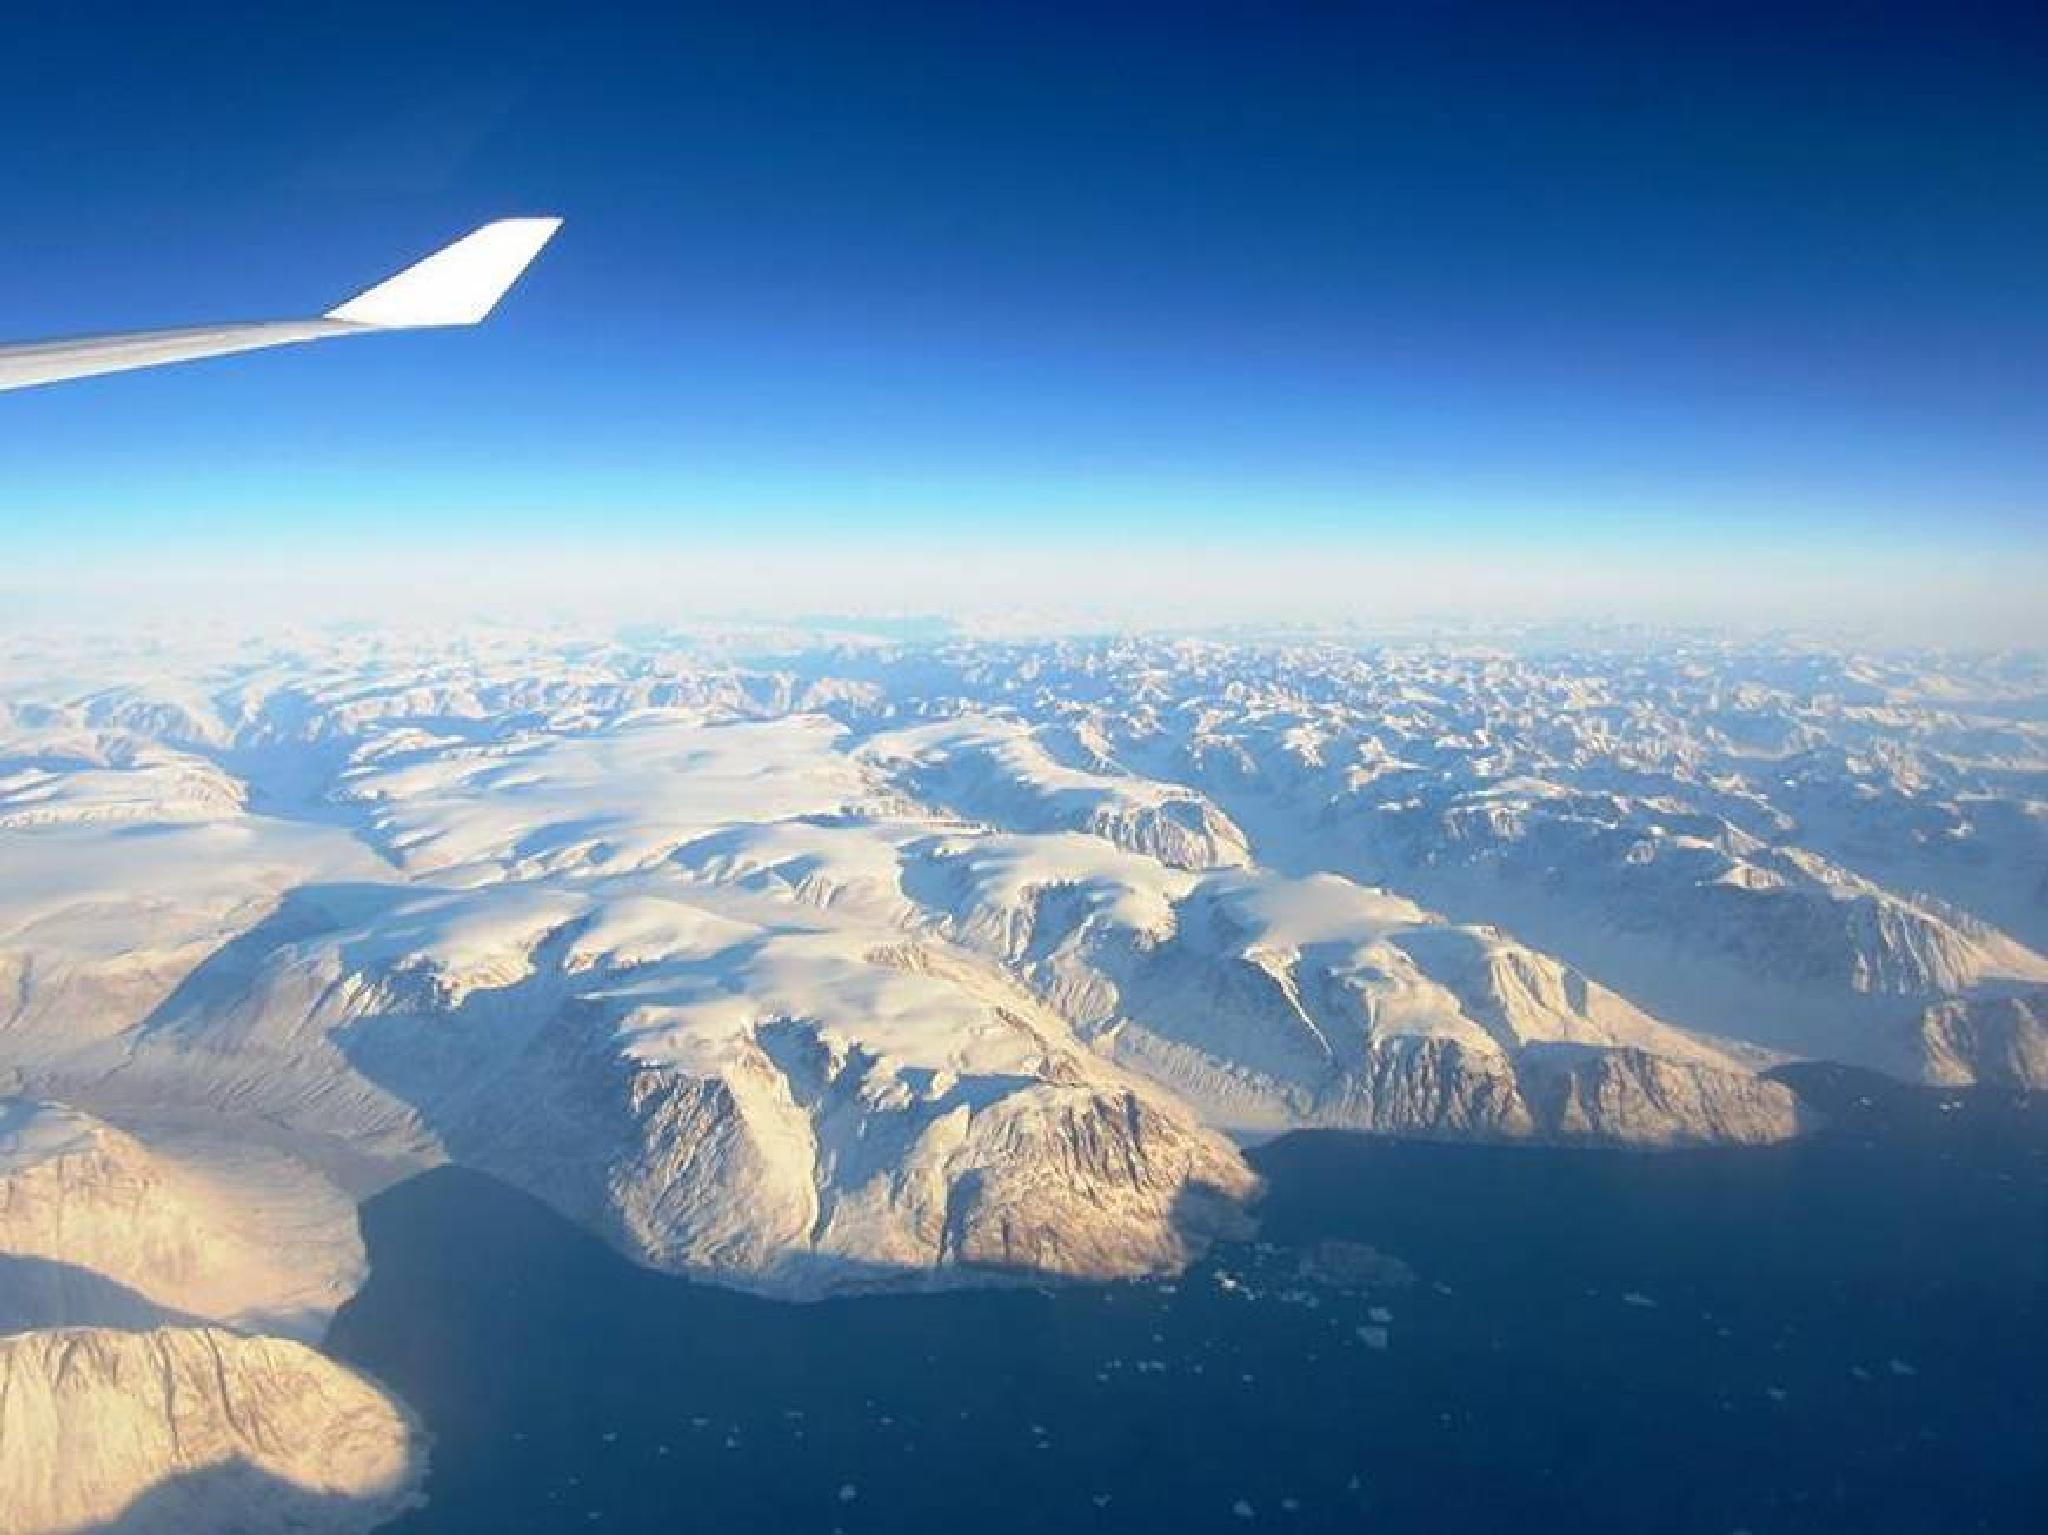 Over Iceland by kate1480